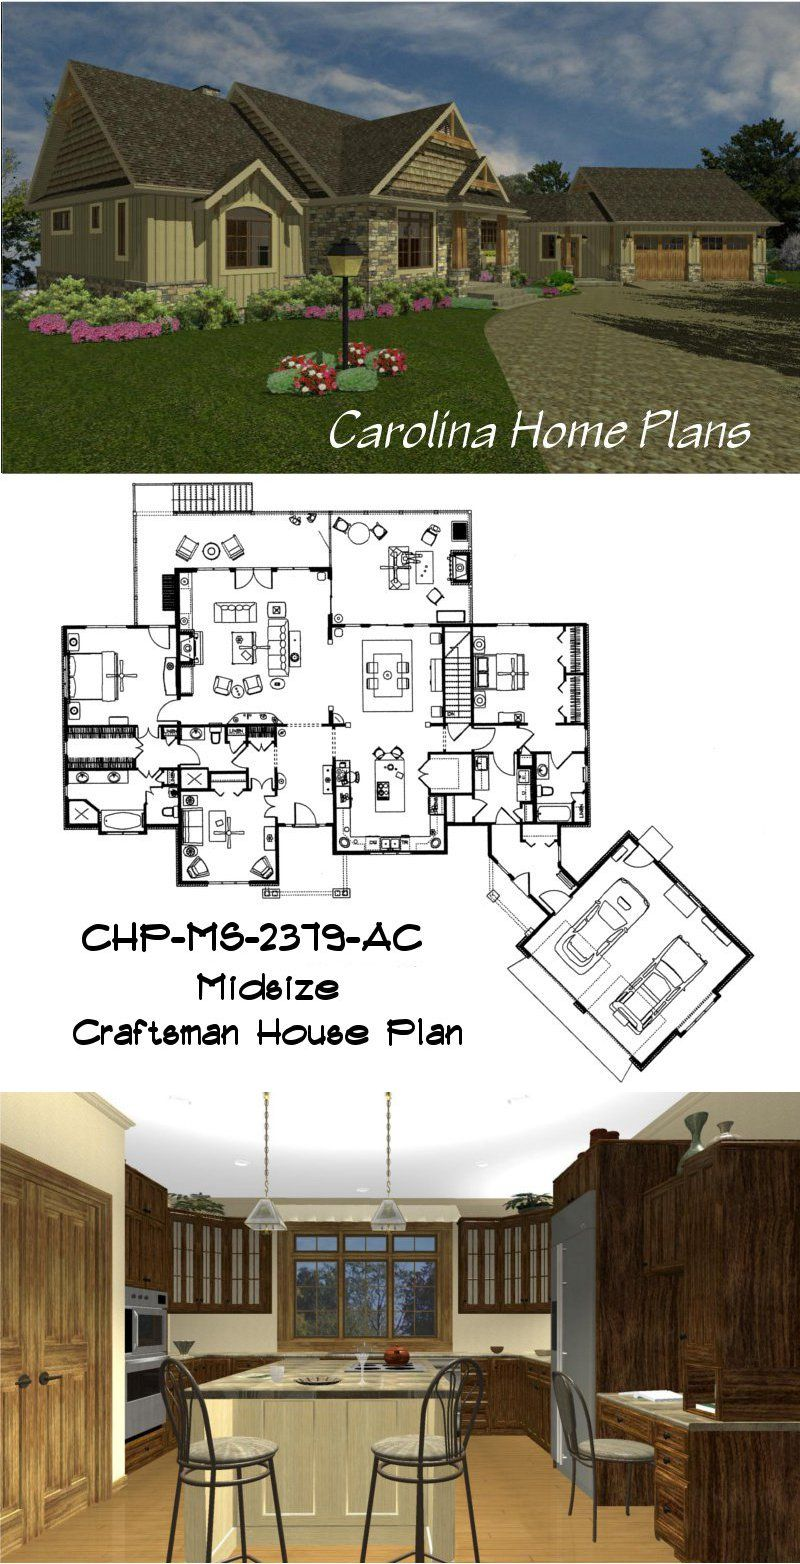 Craftsman Style House Plan With Large Inviting Kitchen View 3d S House Plans Floor Plans Open Floor House Plans